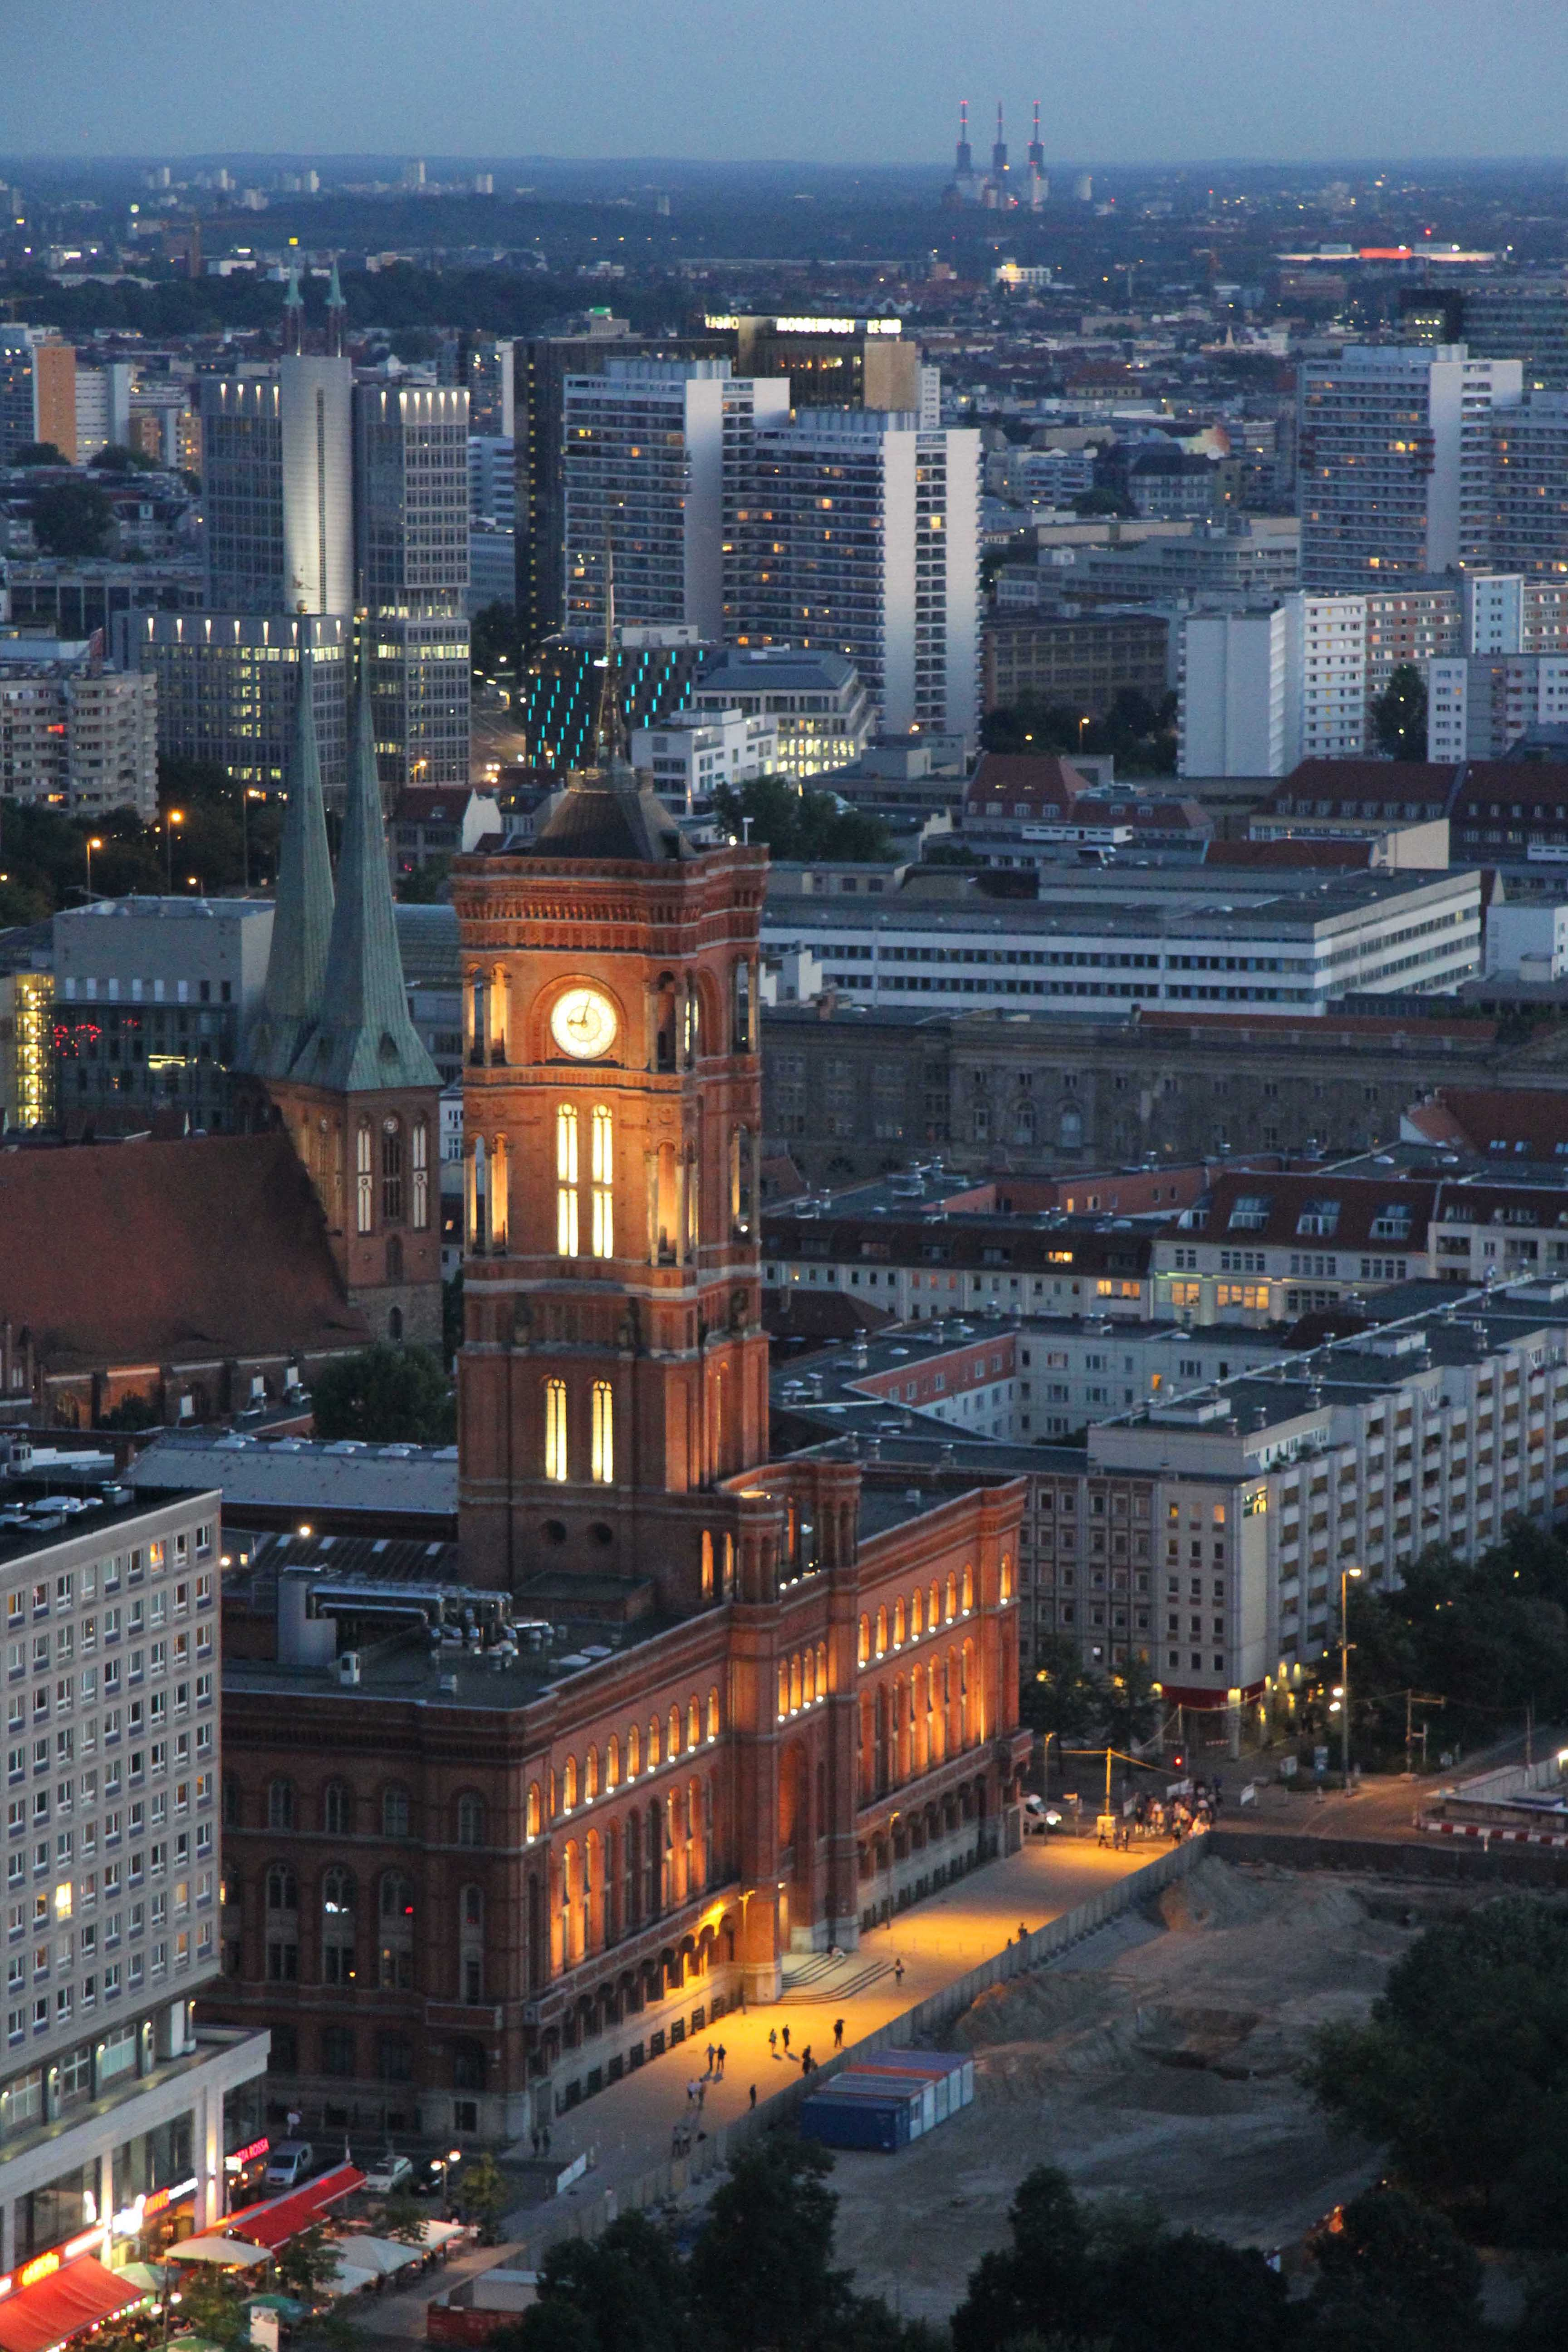 Rotes Rathaus at night: The view from the Sun Terrace of the Park Inn on Alexanderplatz